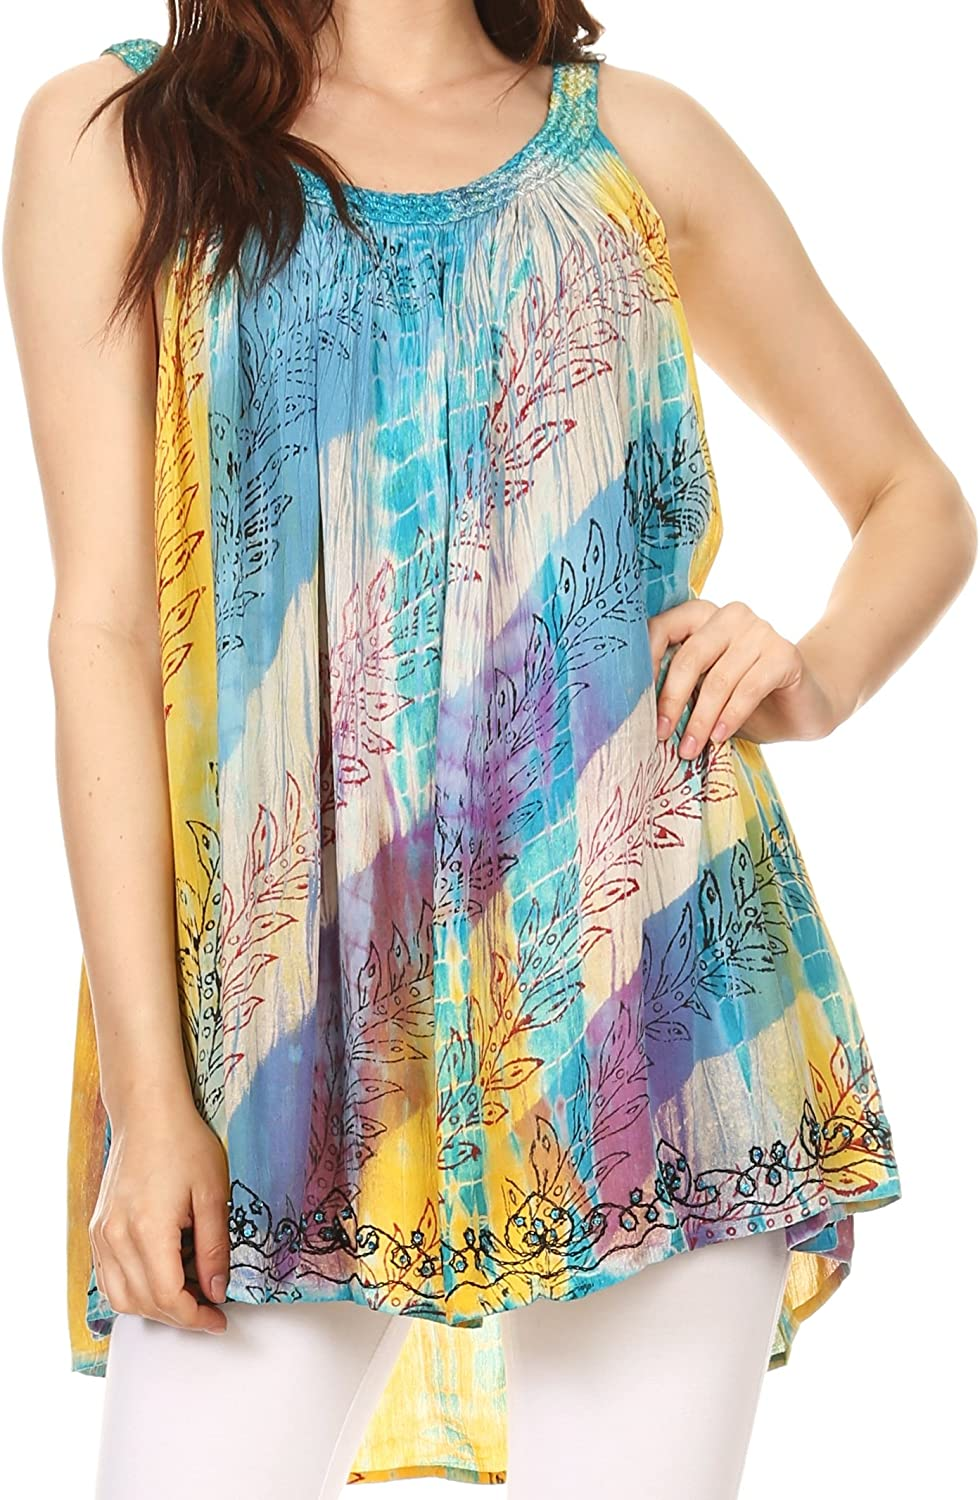 Sakkas Amalia Picot Trim Scoop Neck Tank with Sequins and Embroidery